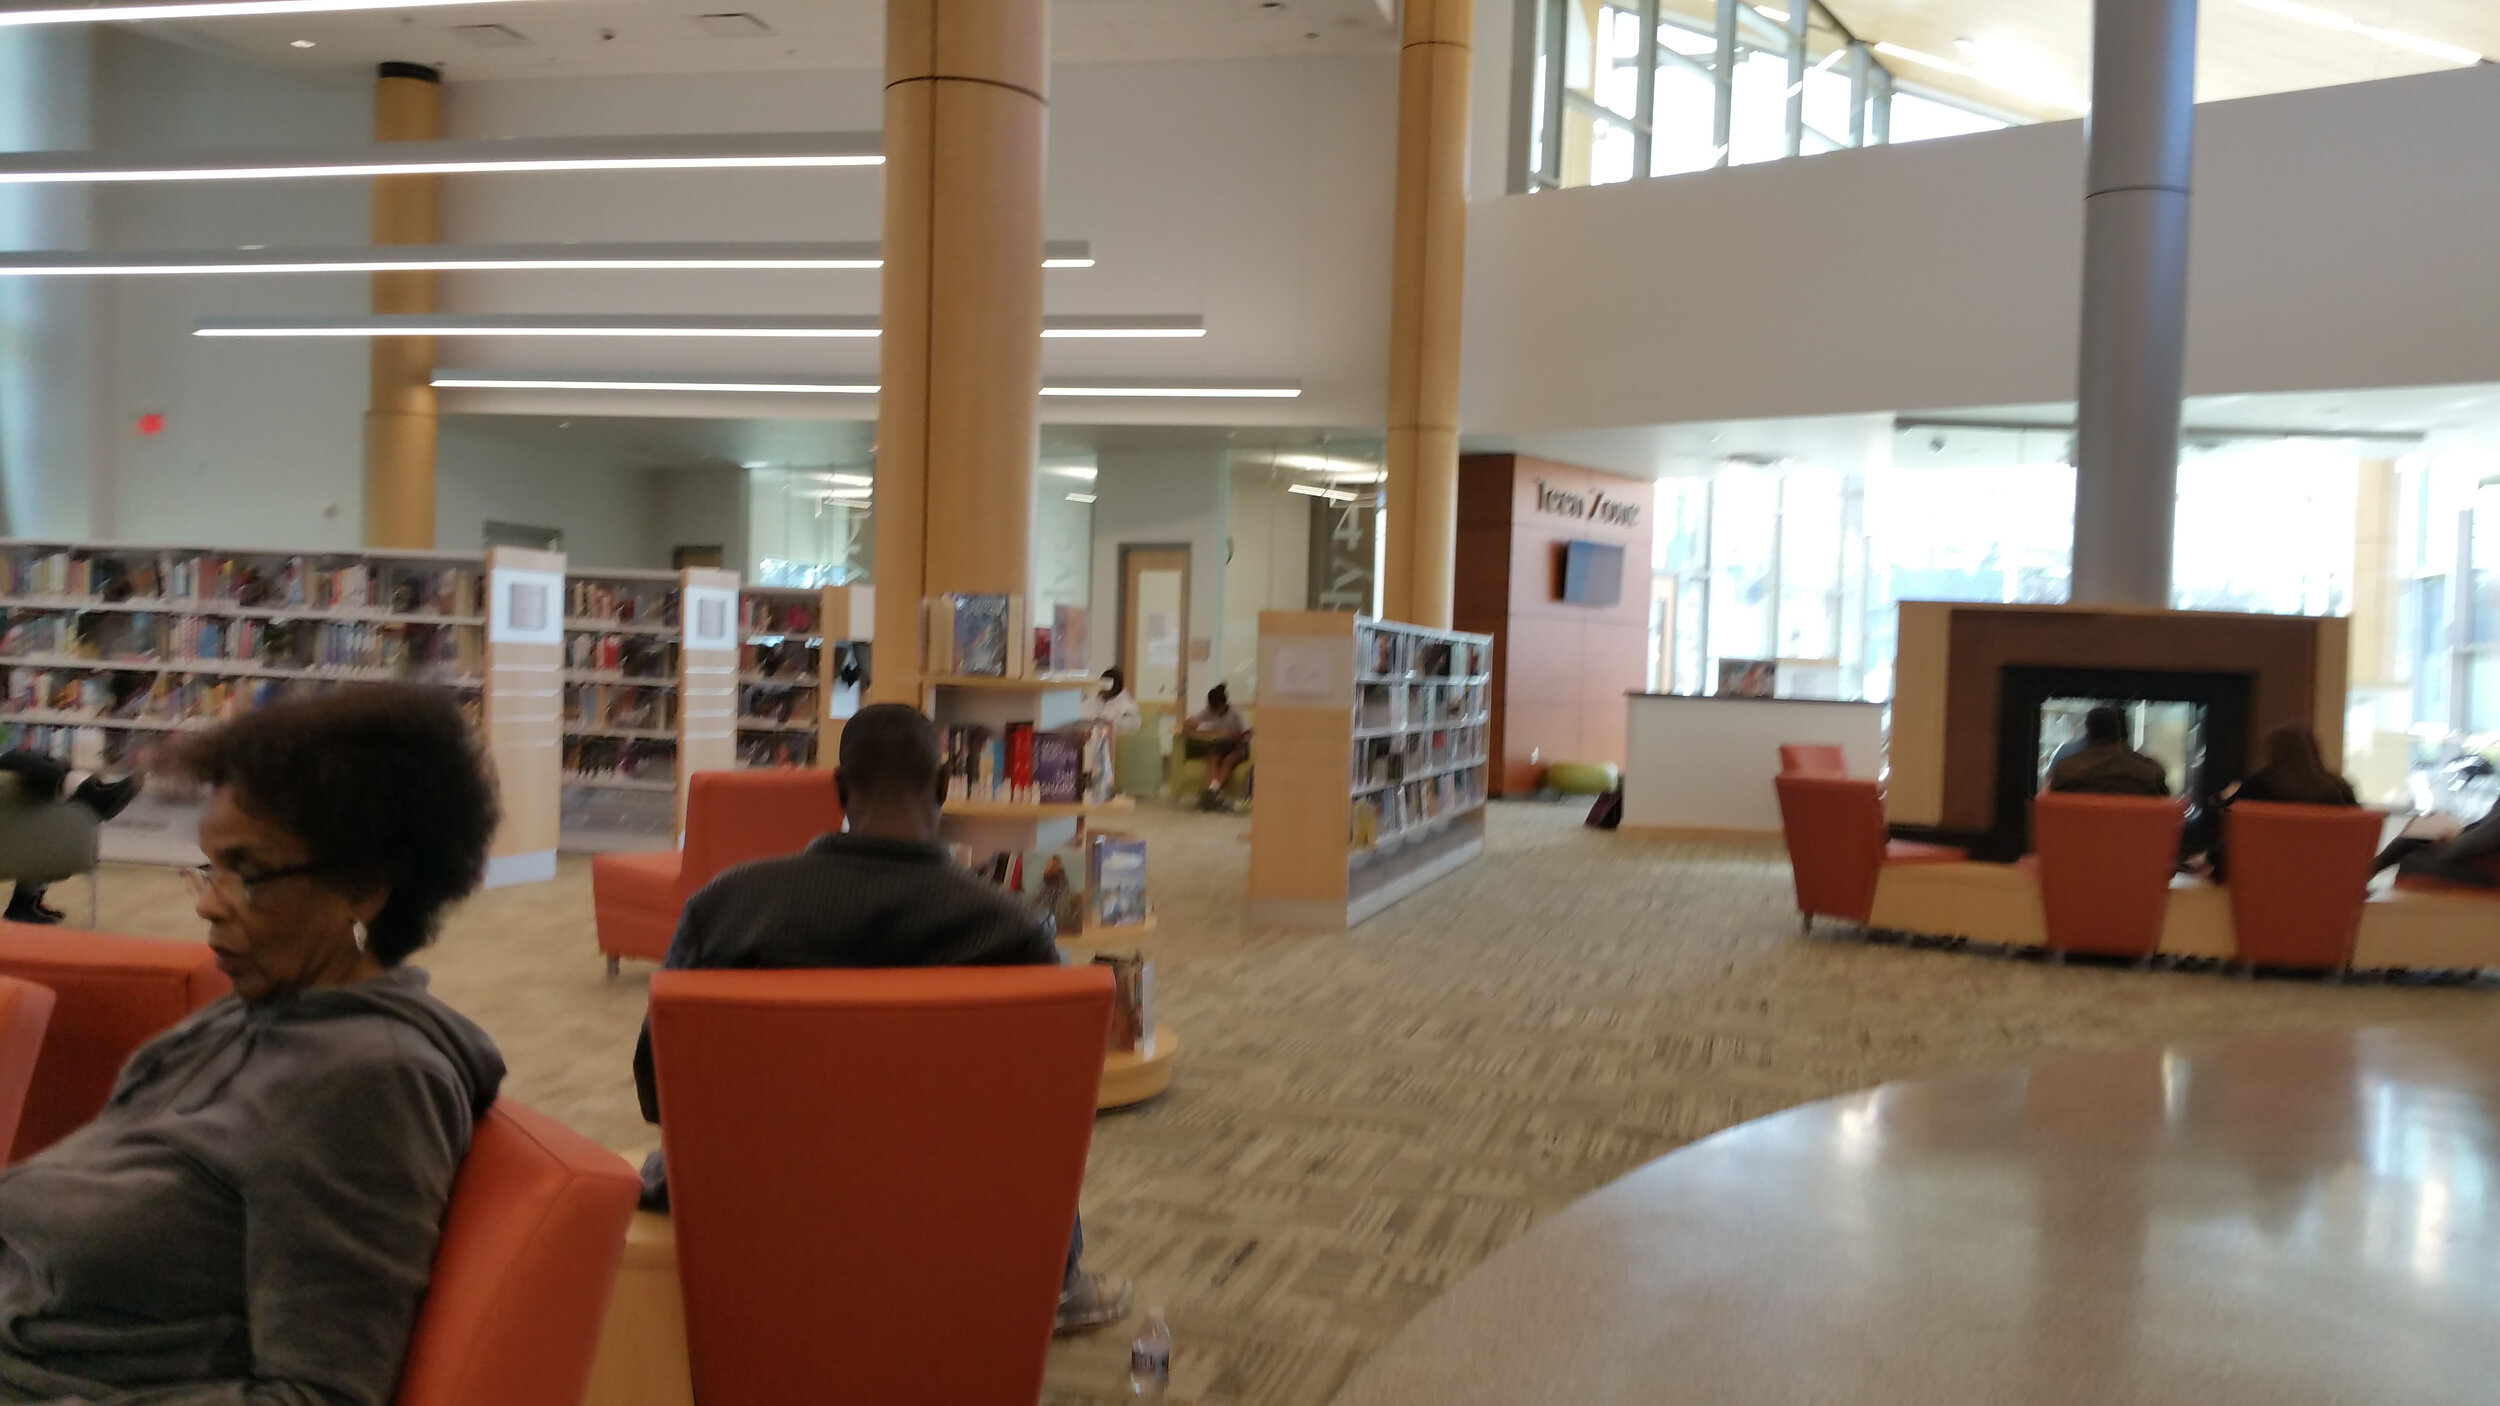 2017-03-08 Laurel Library-154959.jpg